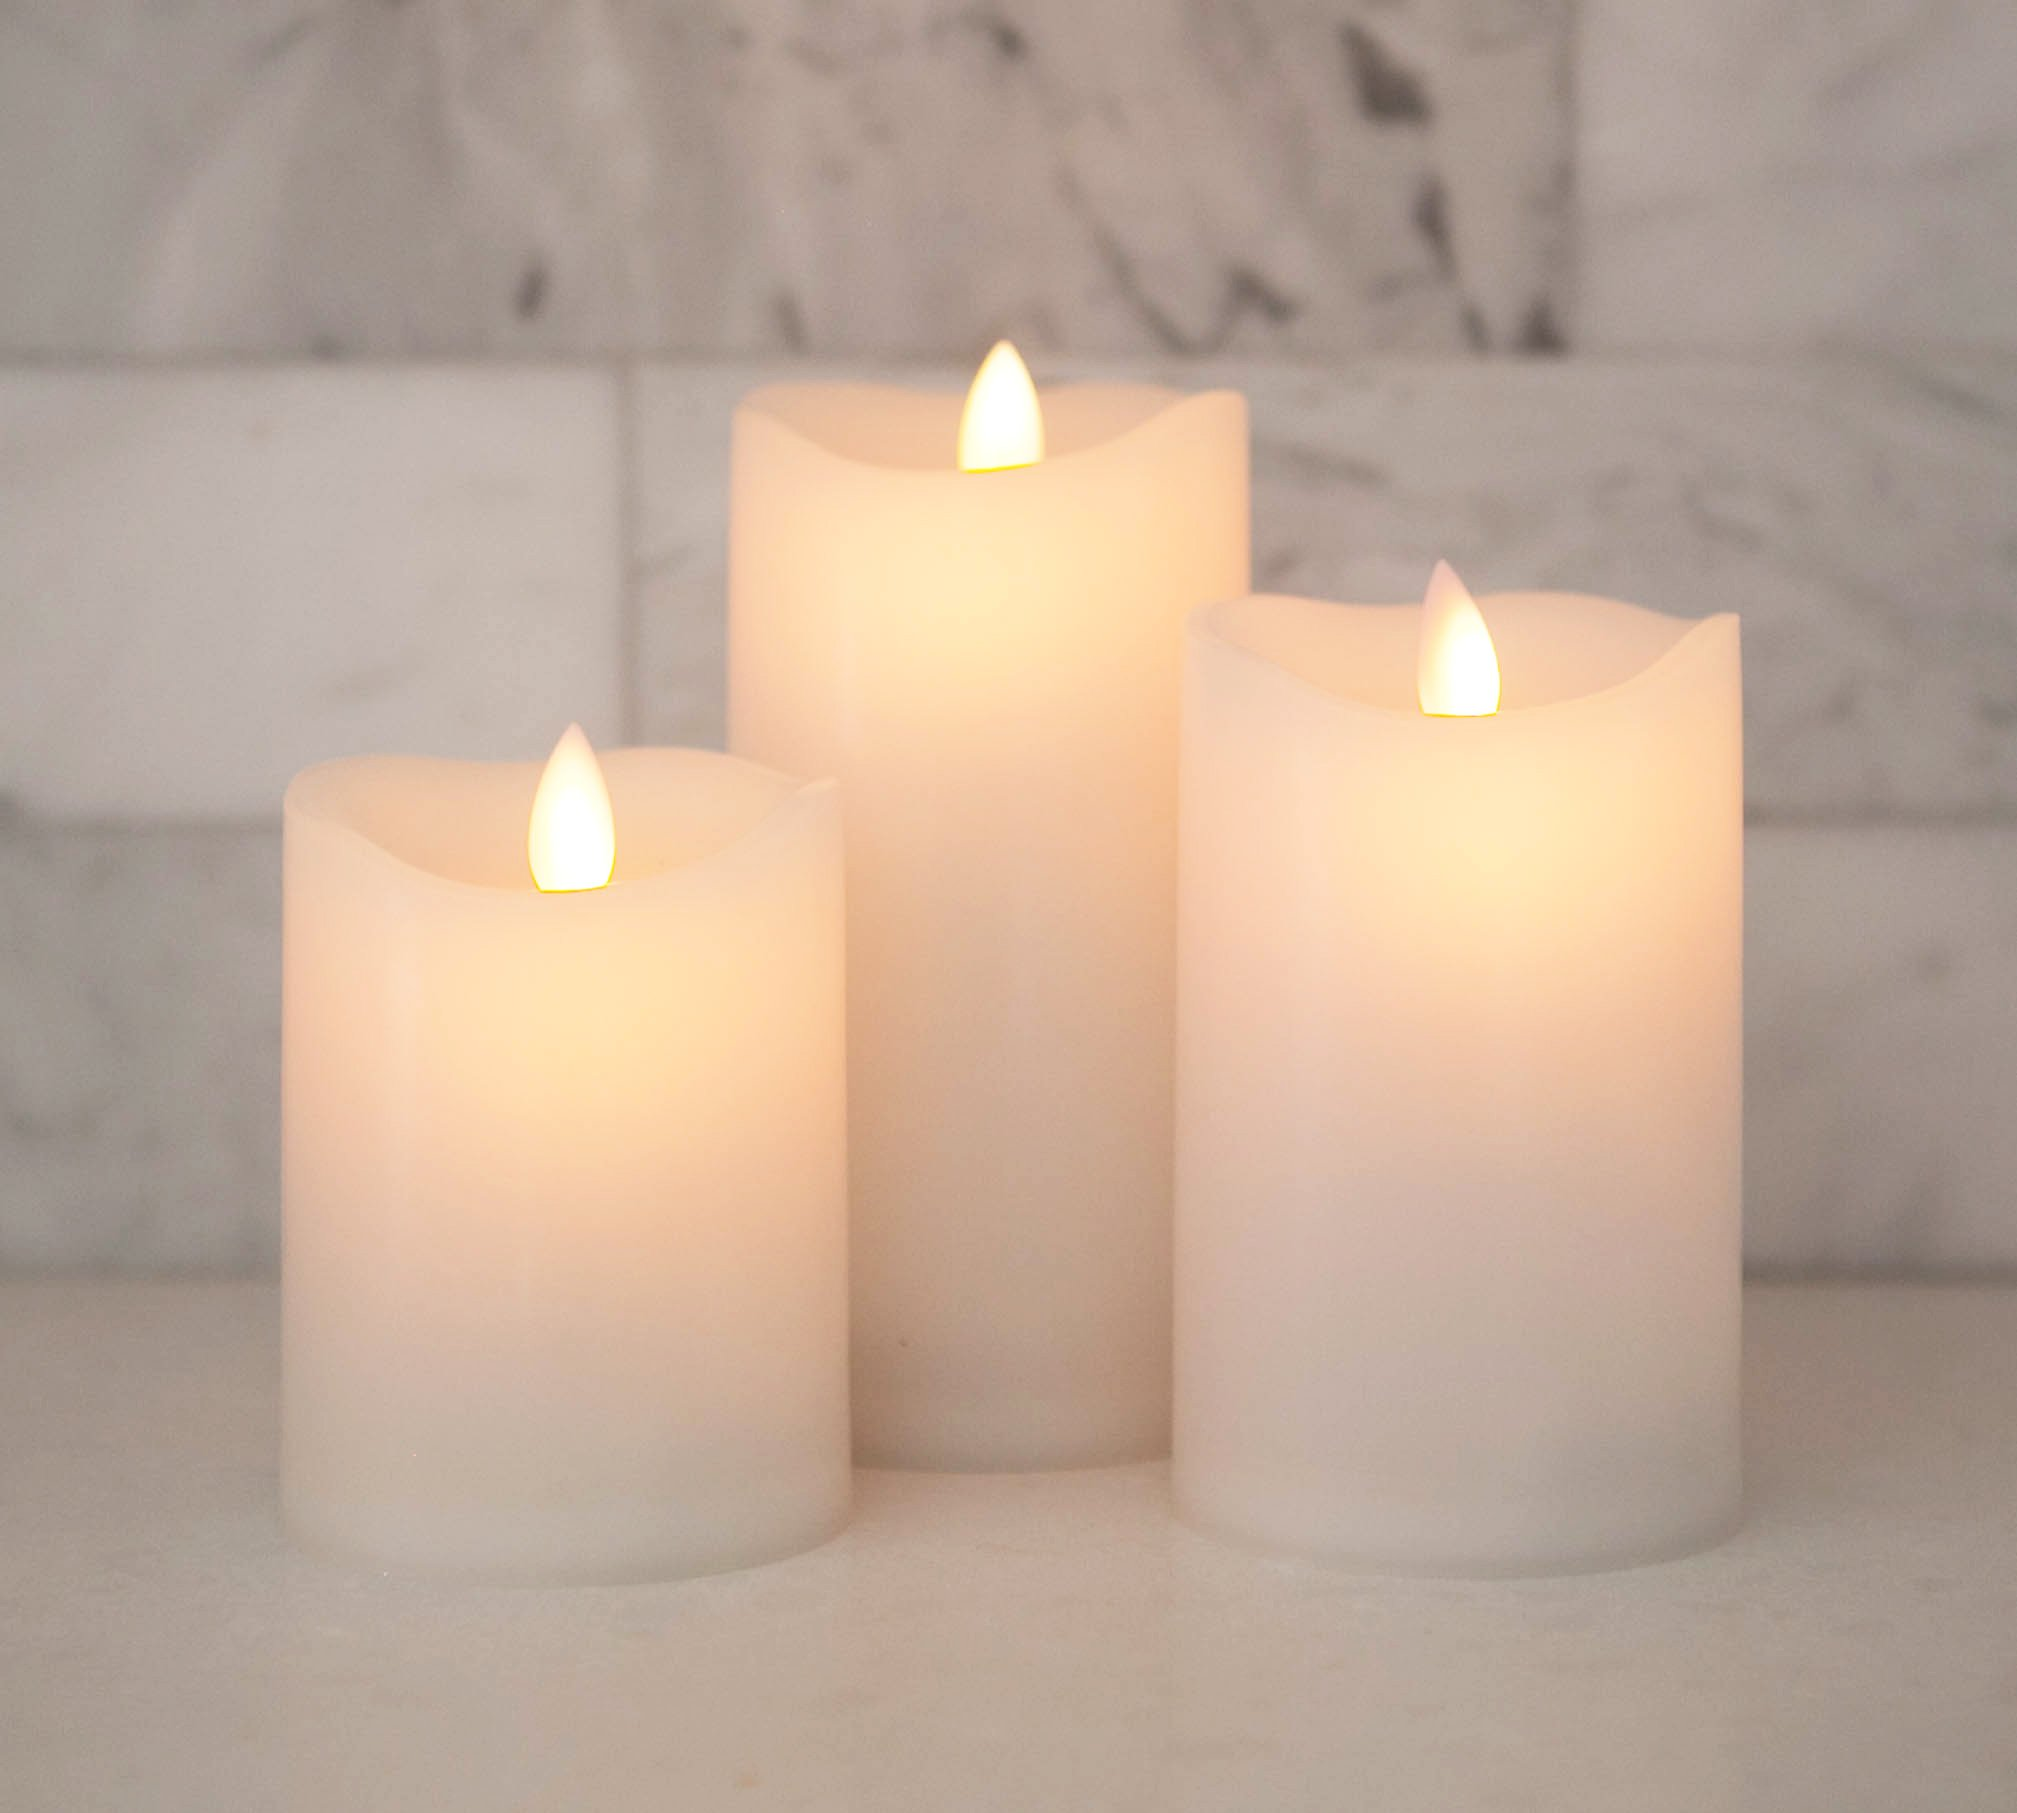 Flameless Candles Led Battery Operated - With Remote Control Timer Flickering Flame White Indoor Outdoor Large Pillar Candle Lights - Set Of 3 Unscented 4'' 5'' 6'' by Sandstone & Sage